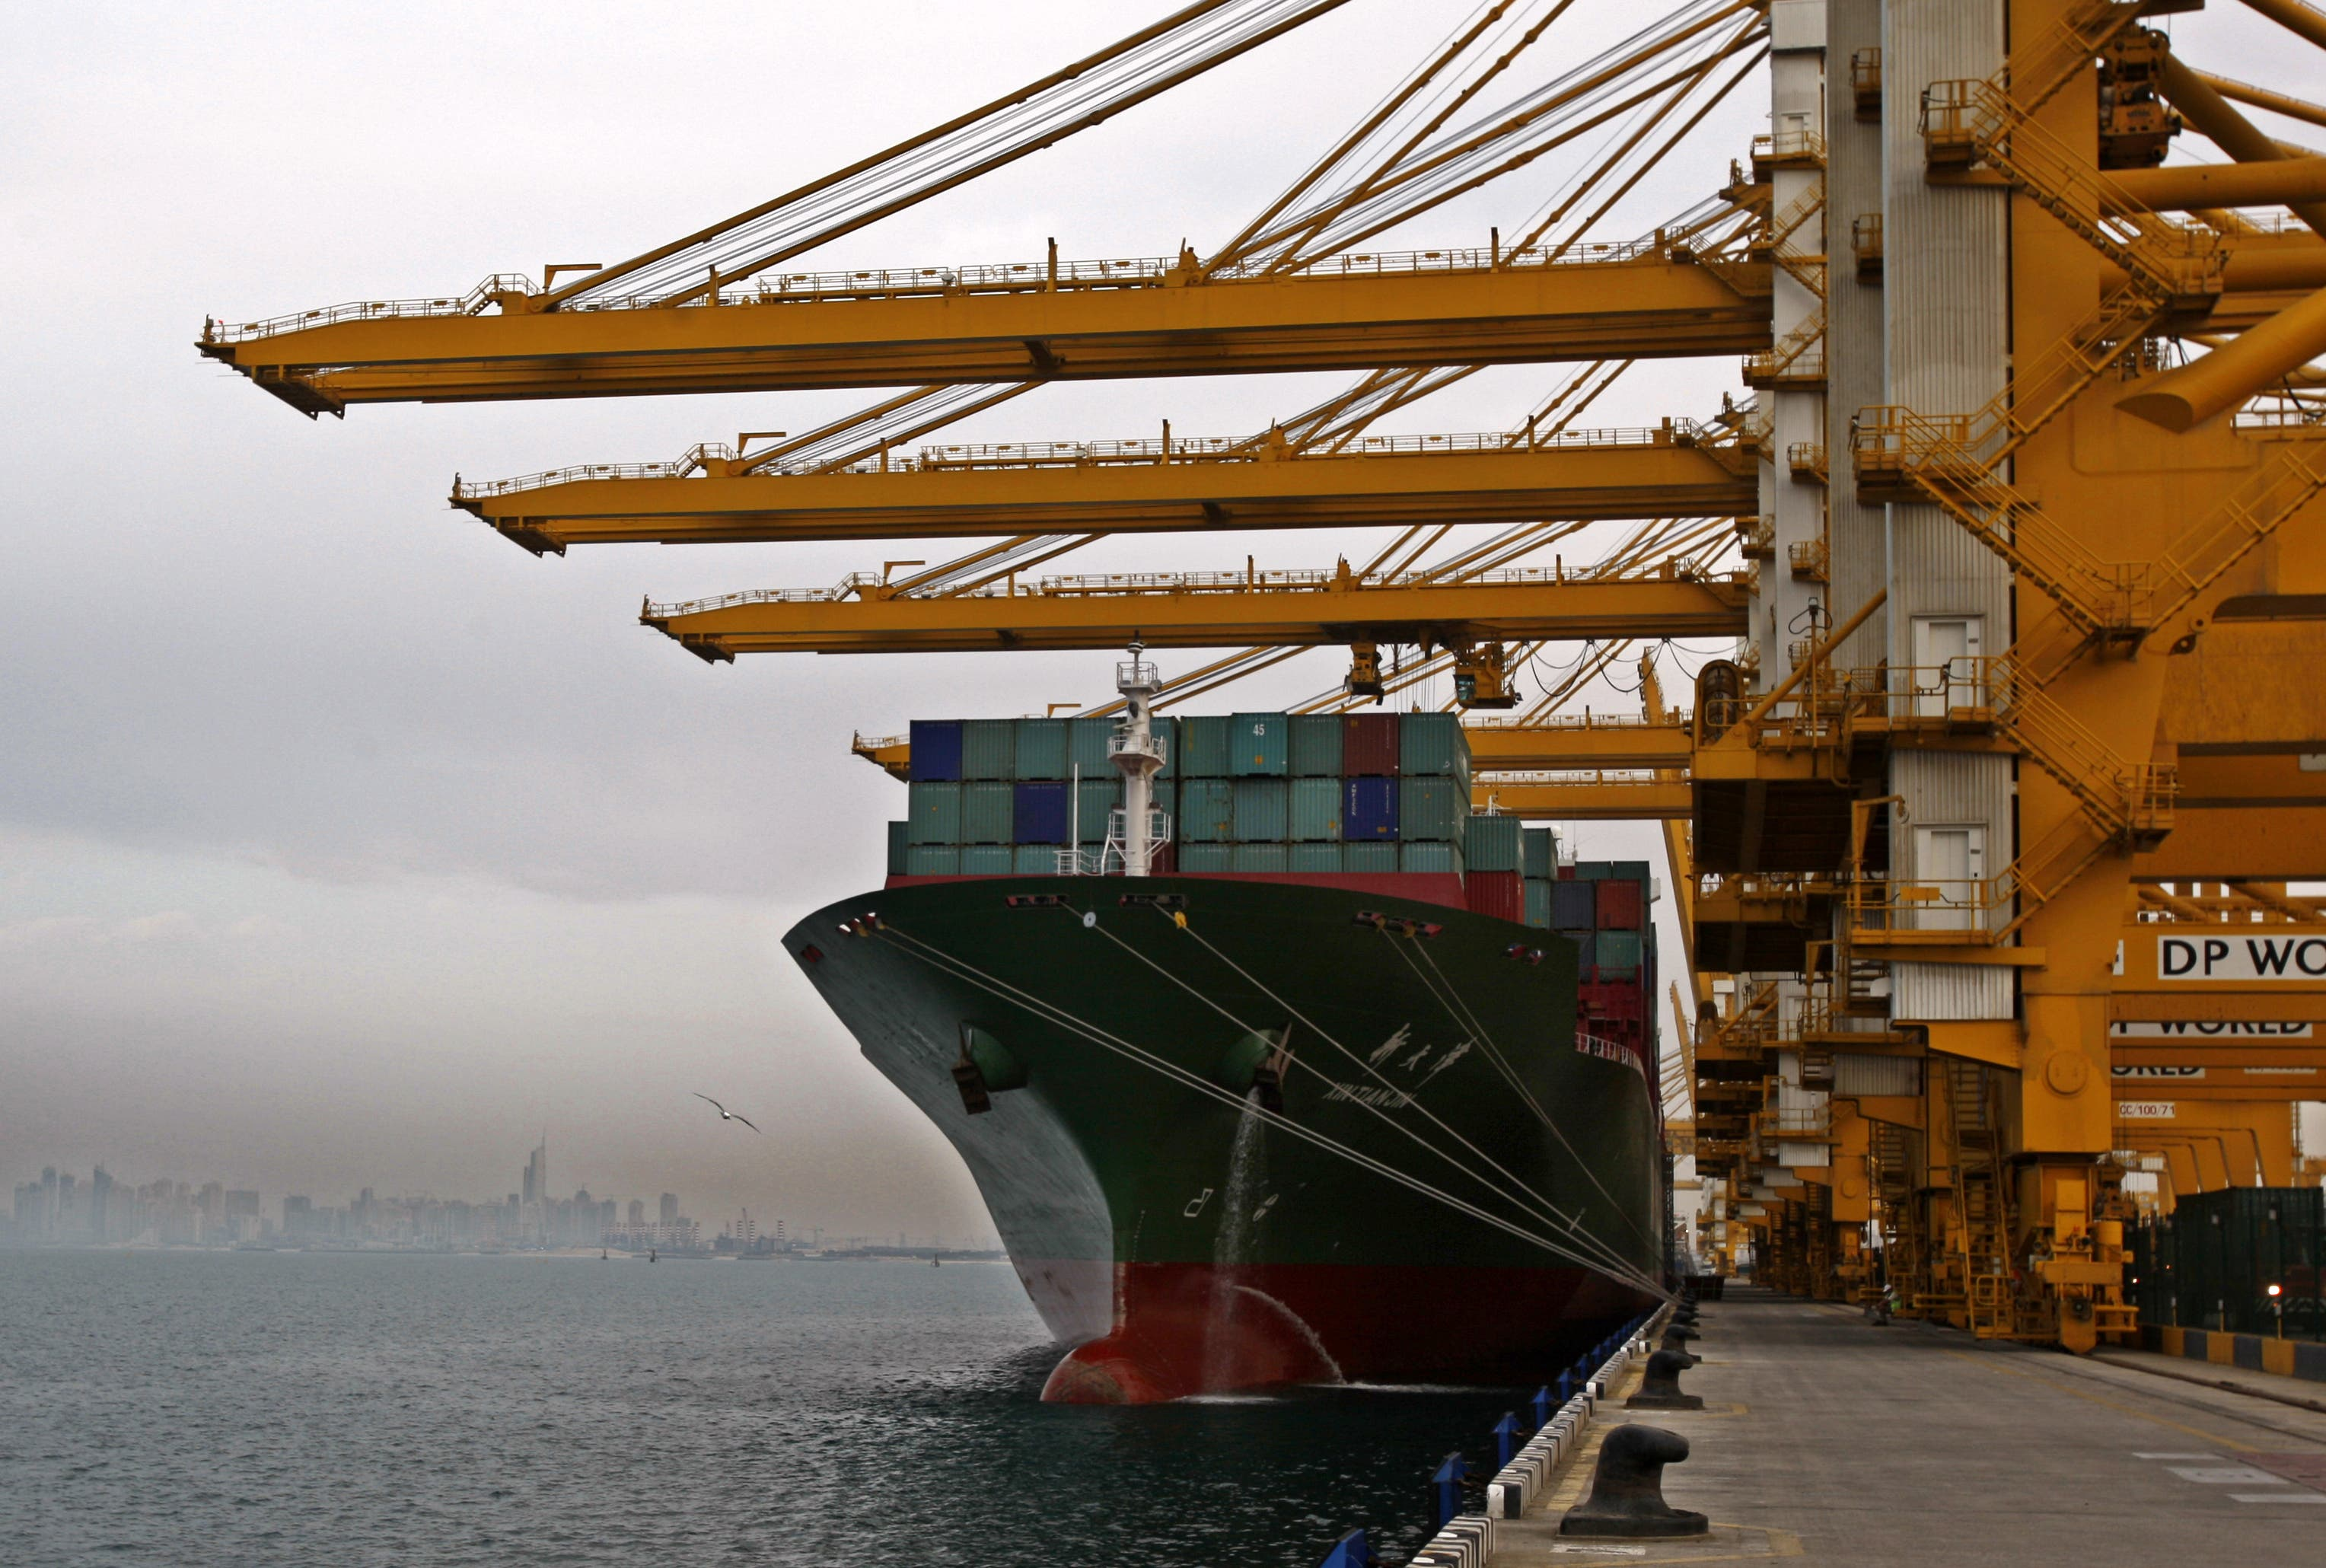 In this Sunday, Feb. 8, 2009 file photo, a cargo ship docks to off load its containers at the Jebel Ali port terminal 2 in Dubai, United Arab Emirates. (File photo: AP)